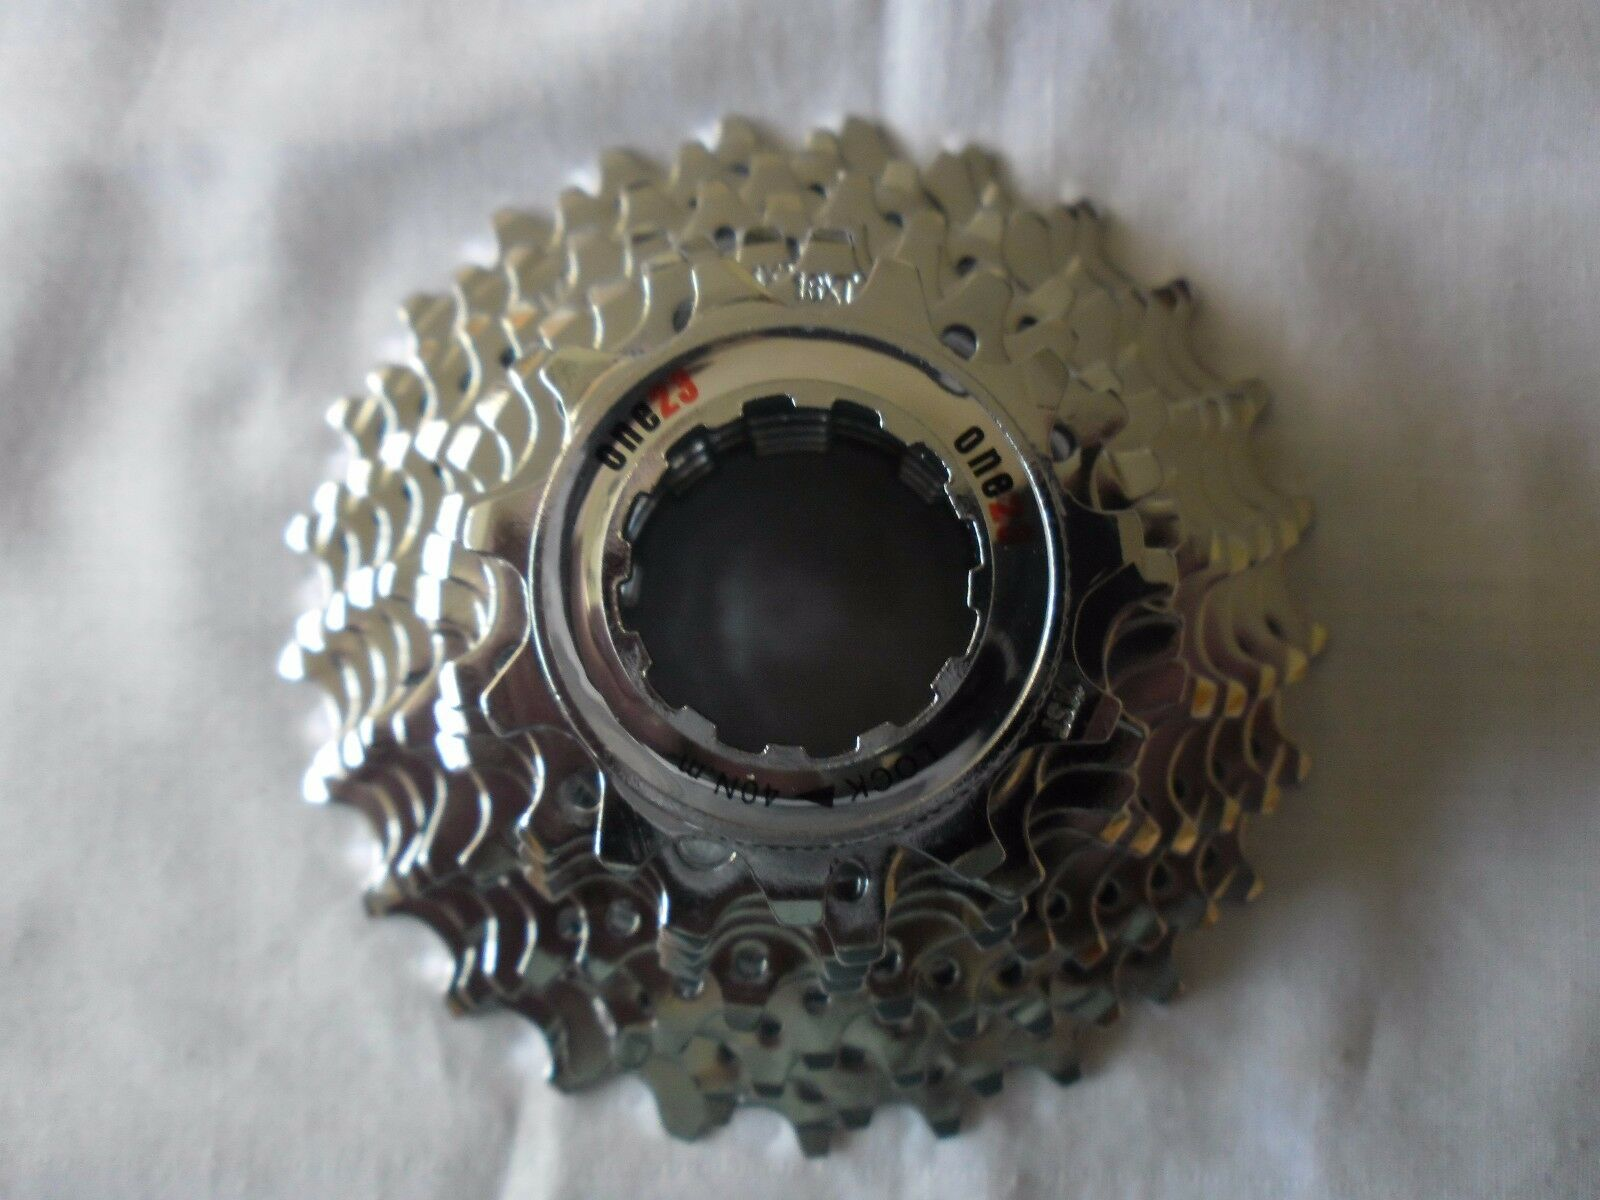 BIKE CYCLE BICYCLE 10 SPEED 11 23T AND 11 25T CASSETTE ALLOY BODY